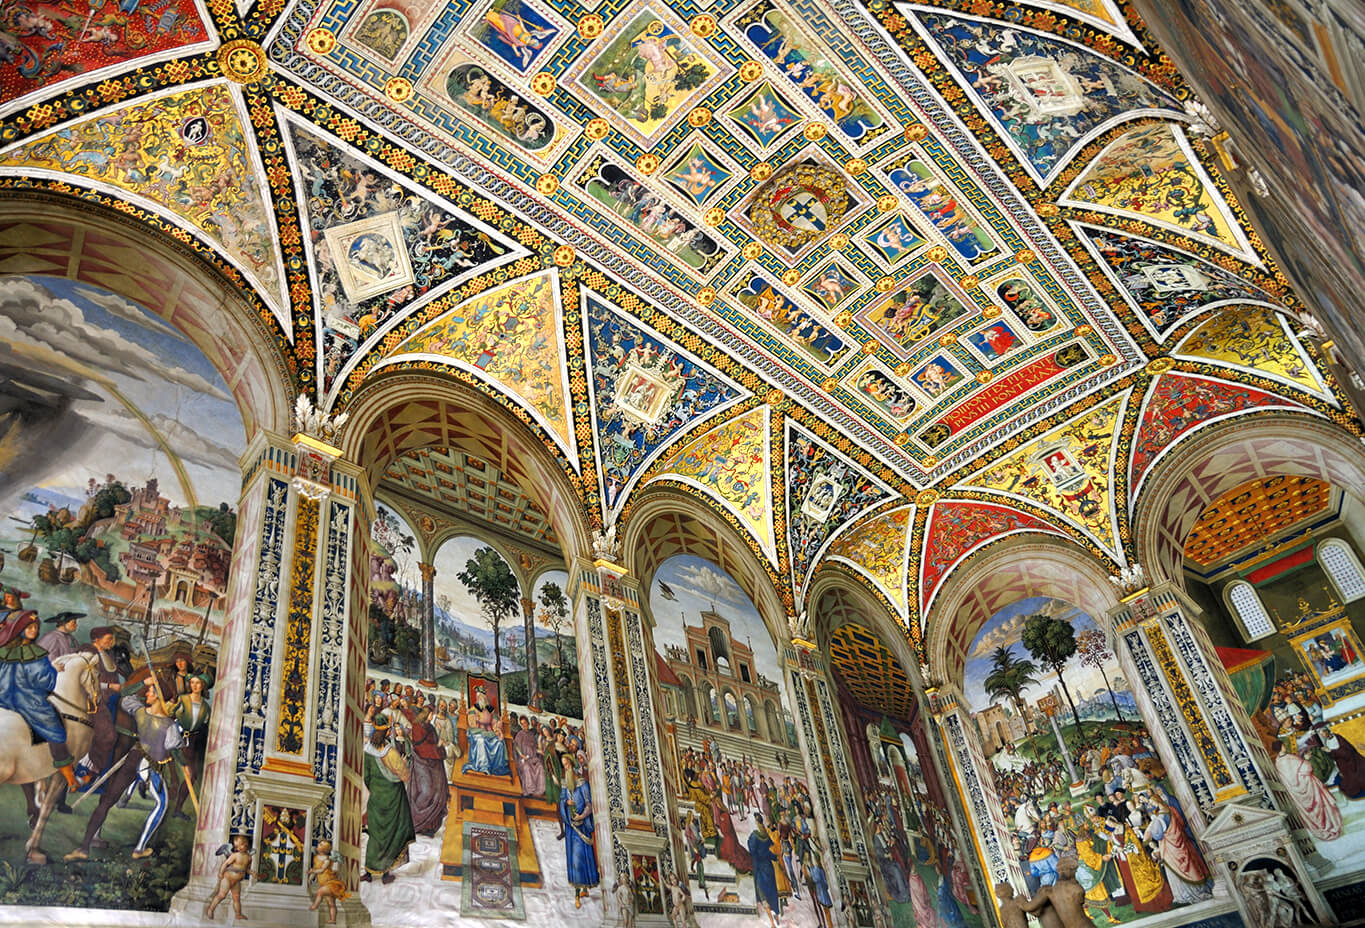 Piccolomini Library in Siena